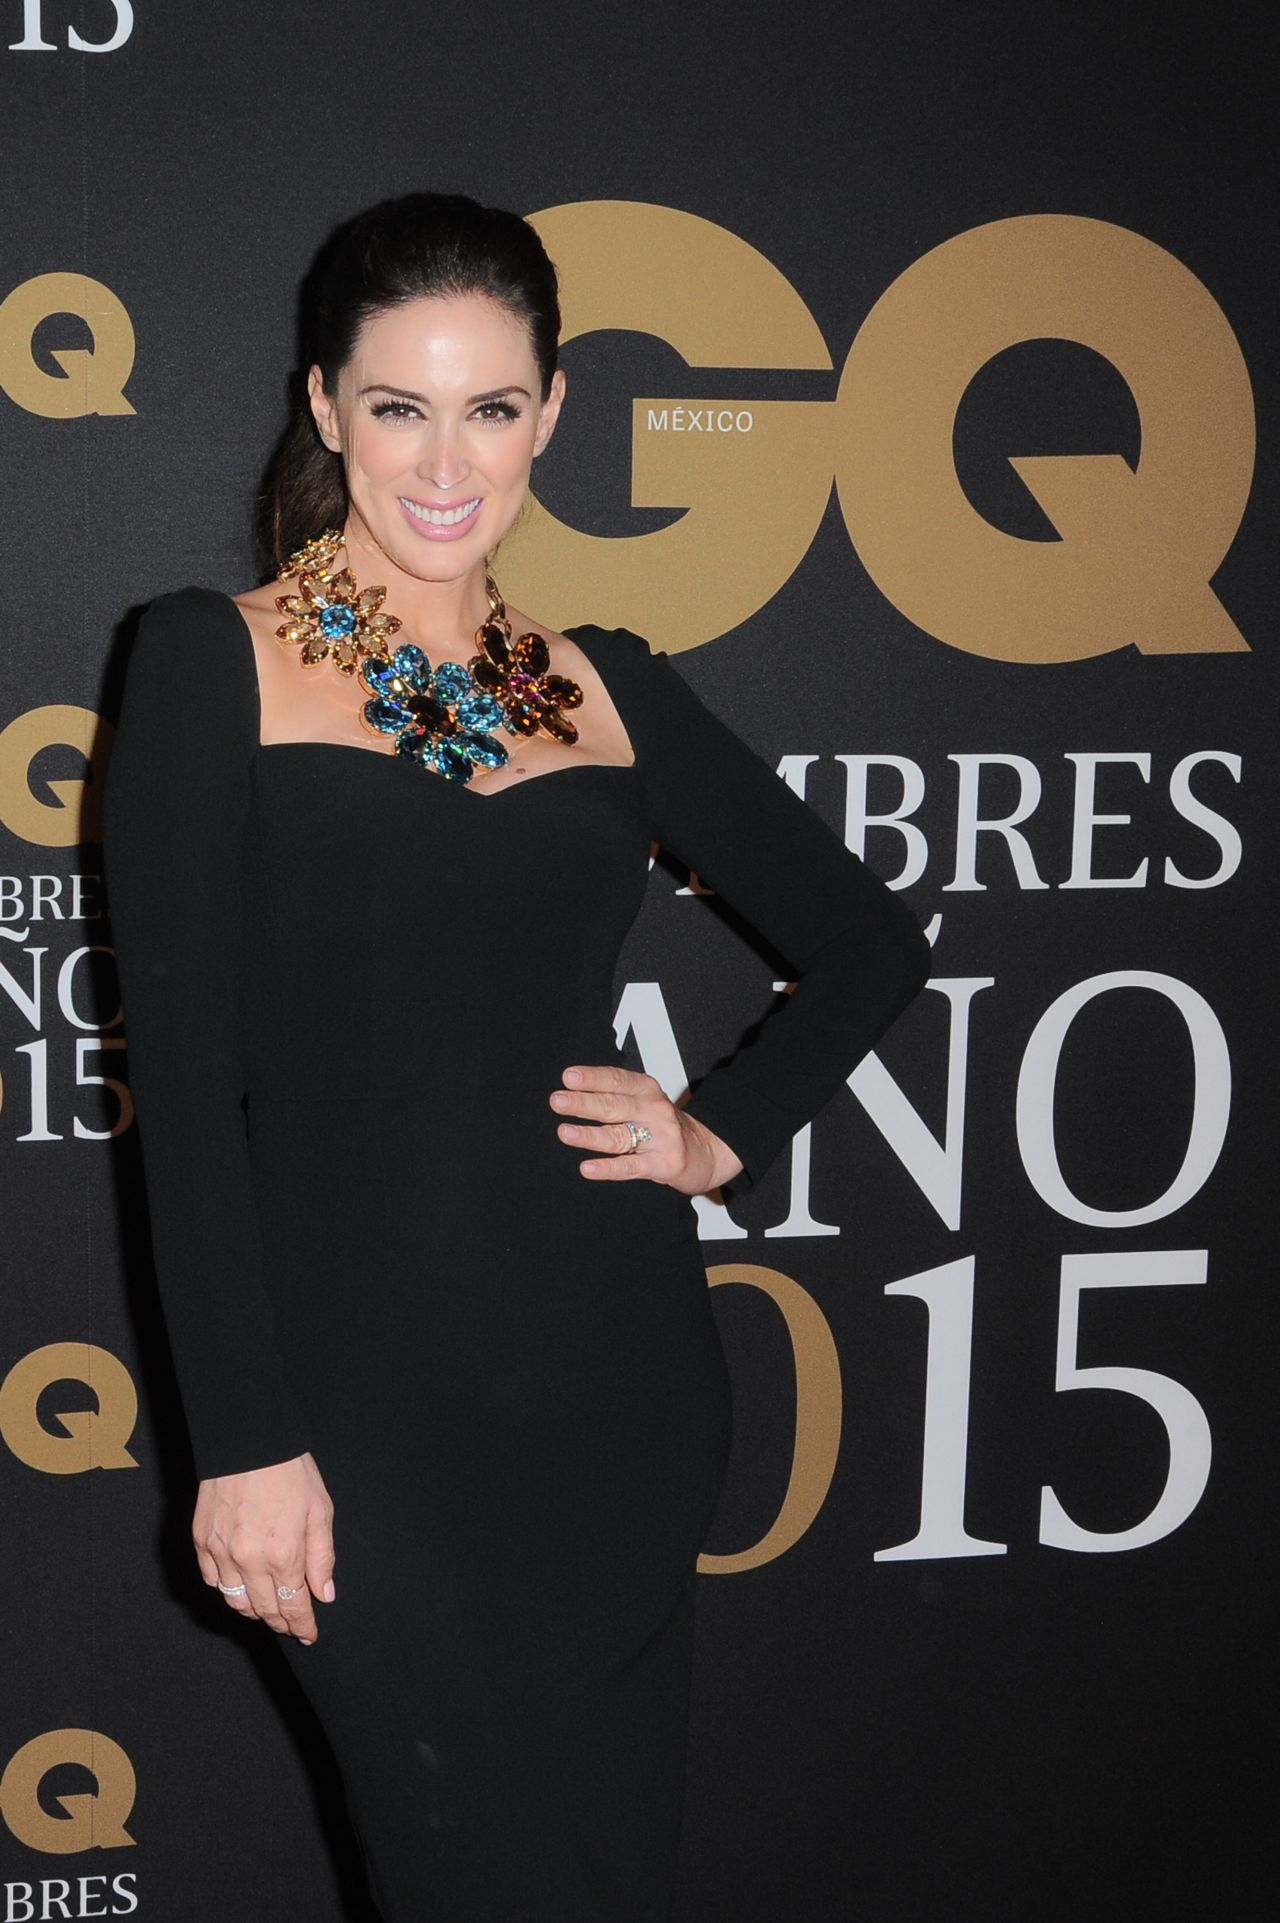 Jacqueline Bracamontes Latest Photos Celebmafia